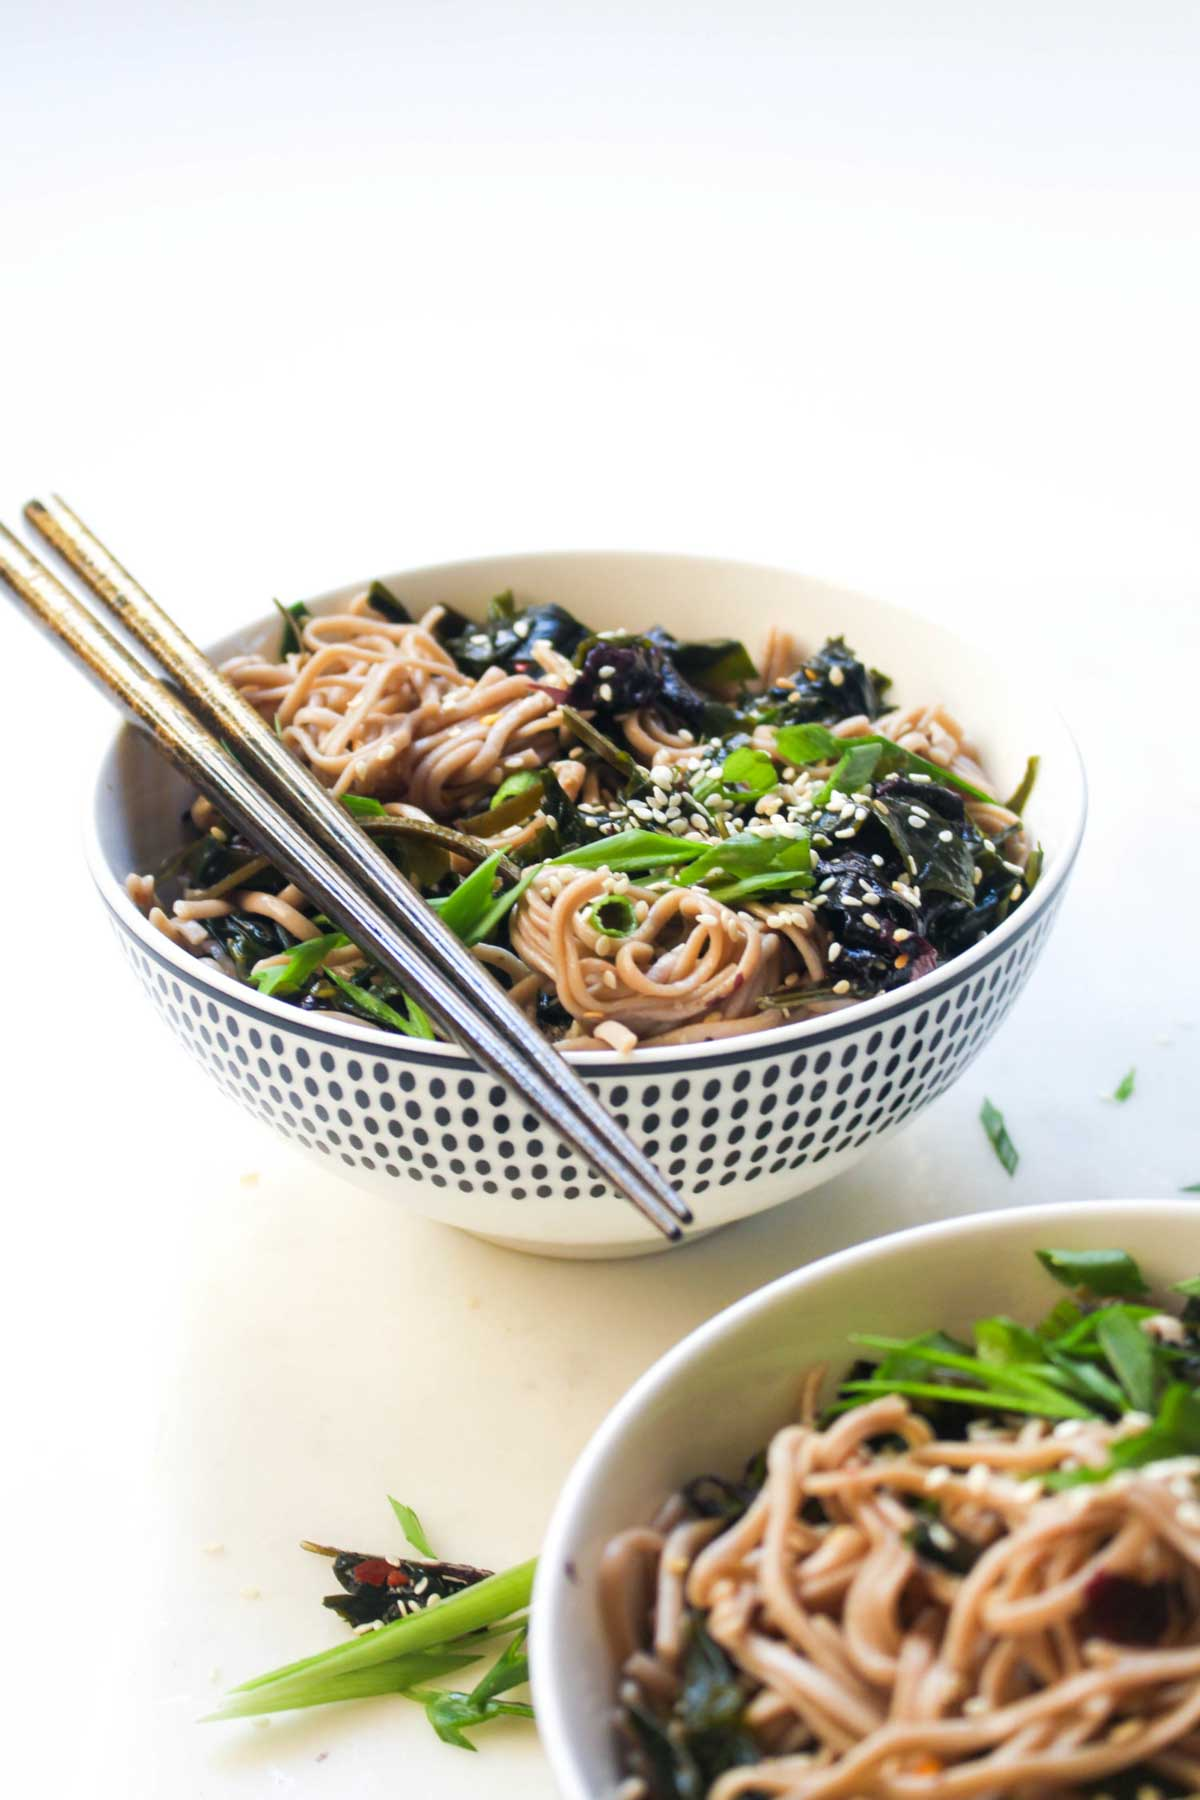 This Seaweed Salad Soba Noodle Bowl is packed full of nutrients! Seaweed is a nutrient powerhouse full of vitamins and minerals. This salad tastes like the starter at your favorite sushi joint, but substantial enough for dinner. | CatchingSeeds.com